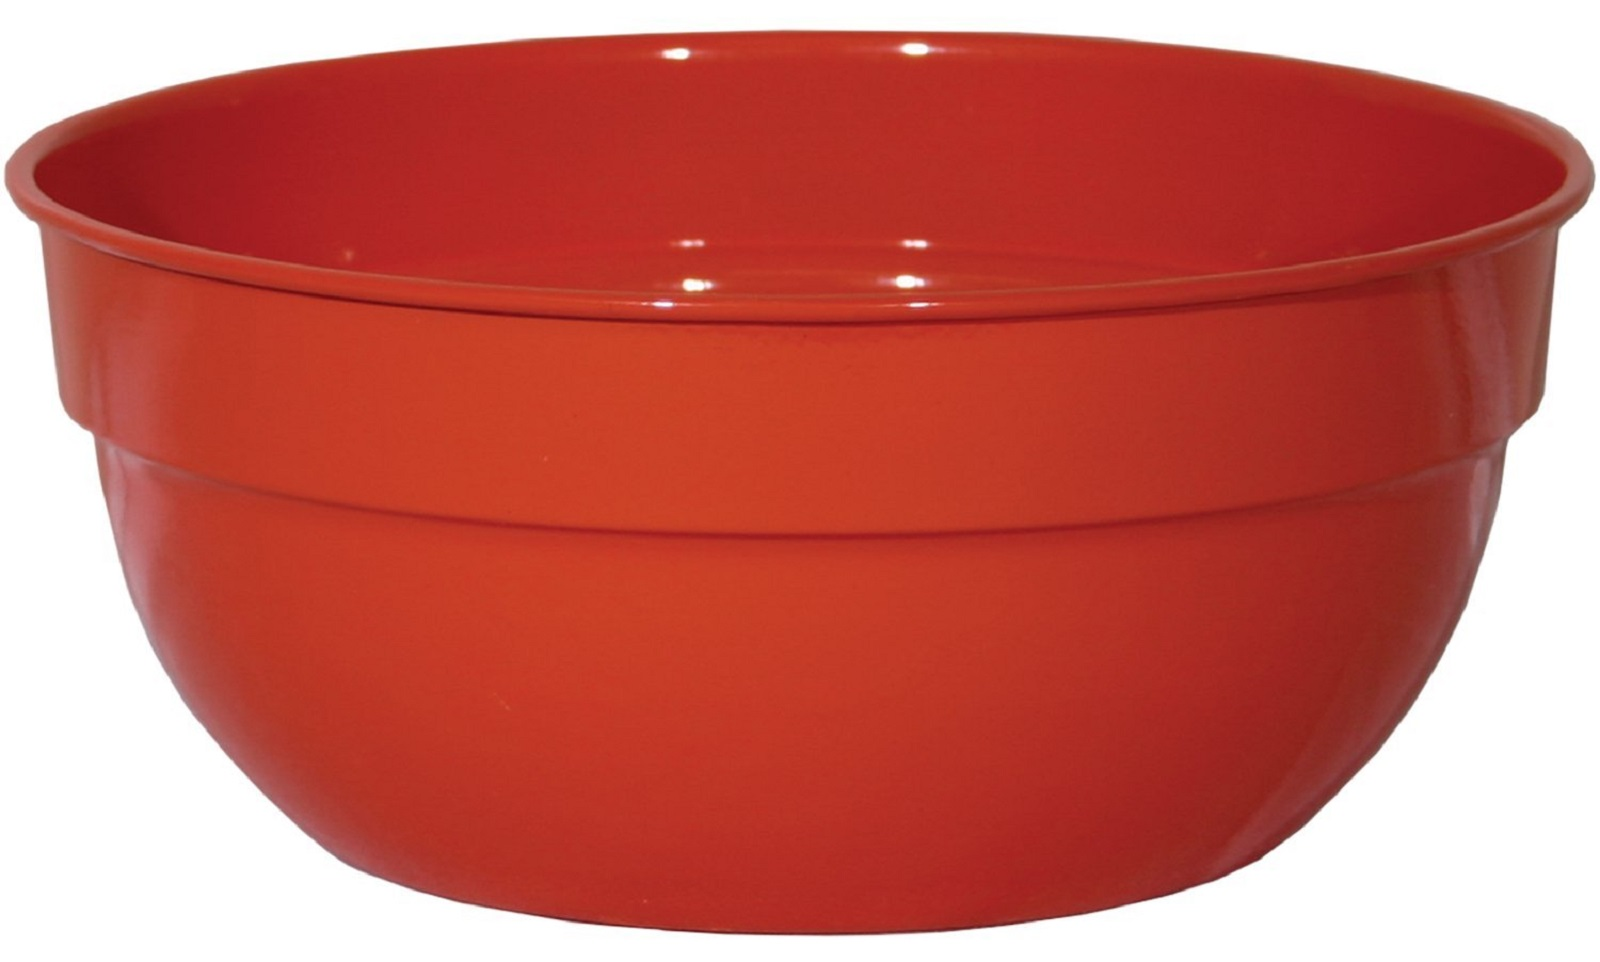 "Robert Allen Home & Garden Mini Bella Classic Bowl Planter 8"""" Tanger Red"